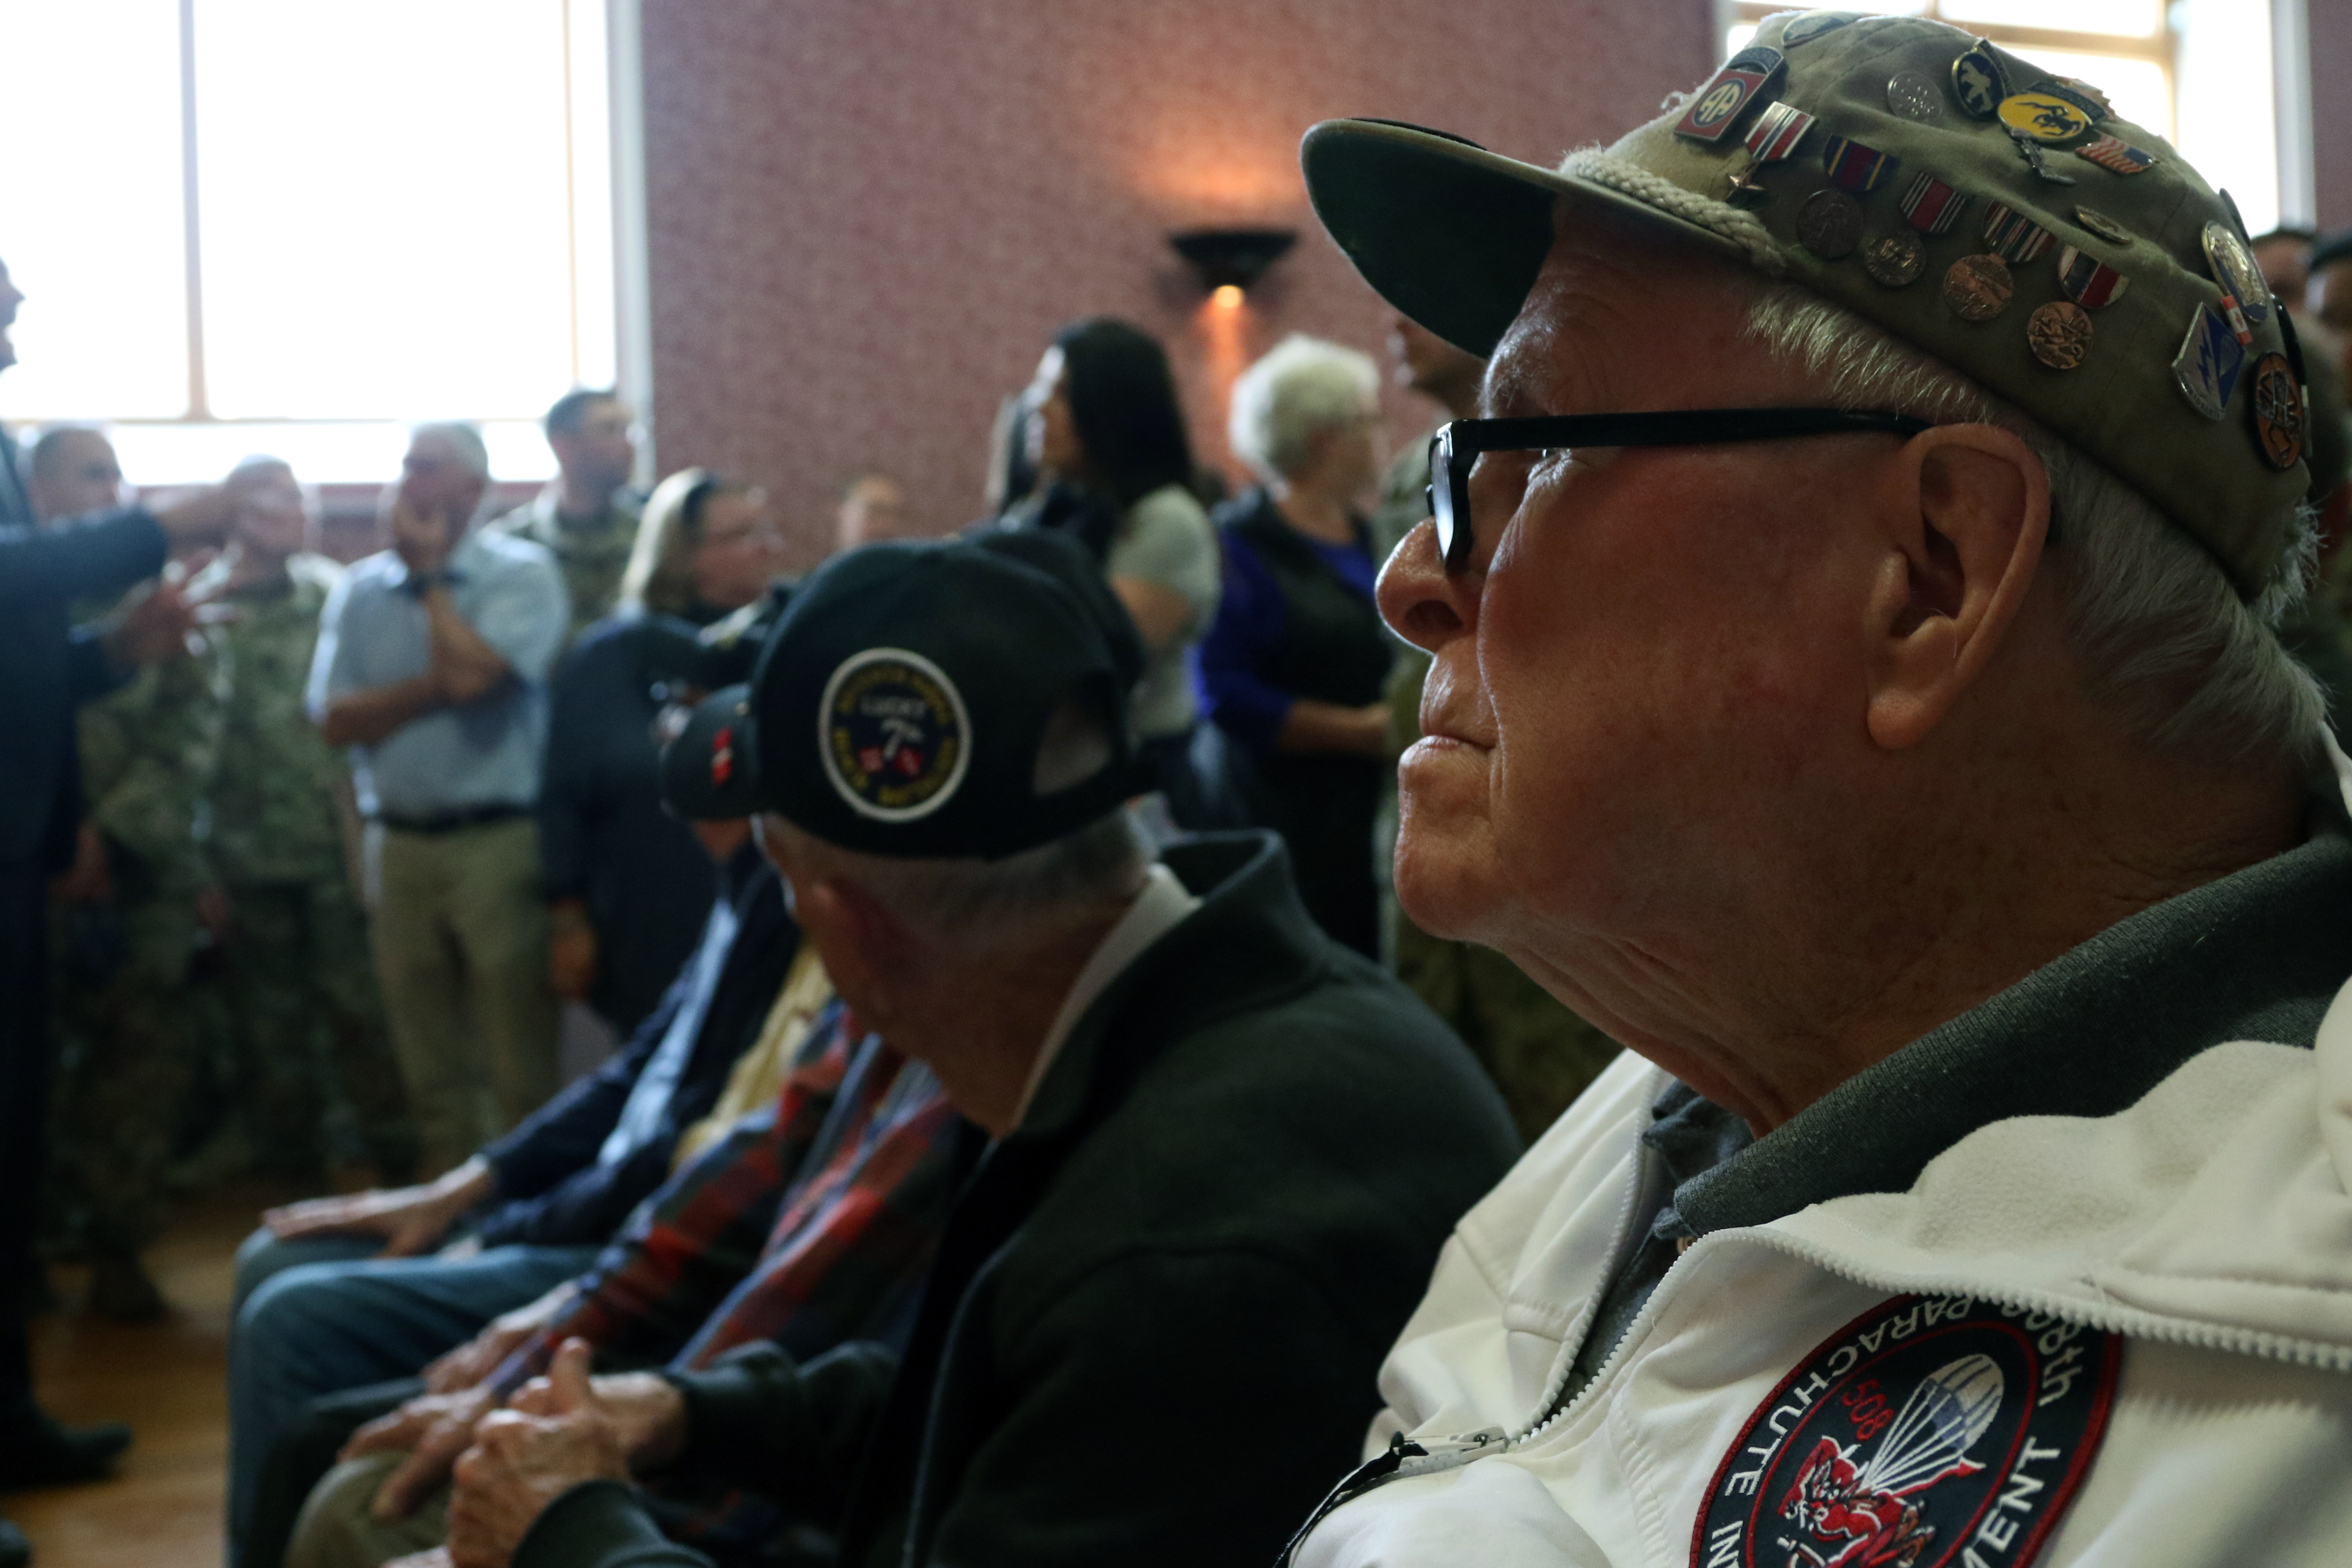 WWII veteran, George Shankle (front), a radio operator with Co. E., 508th Parachute Infantry Regiment, 1st Brigade Combat Team, 82nd Airborne Division, and other WWII veterans watch as the All American Choir sings several songs inside the Sainte Mere Eglise town hall on May 31, 2018 at Normandy, France. Shankle along with the other veterans travel to Normandy yearly to honor the fellow paratroopers that never made it home from WWII and to meet with current paratroopers in an opportunity to share their stories so that they may better know the divisions history.